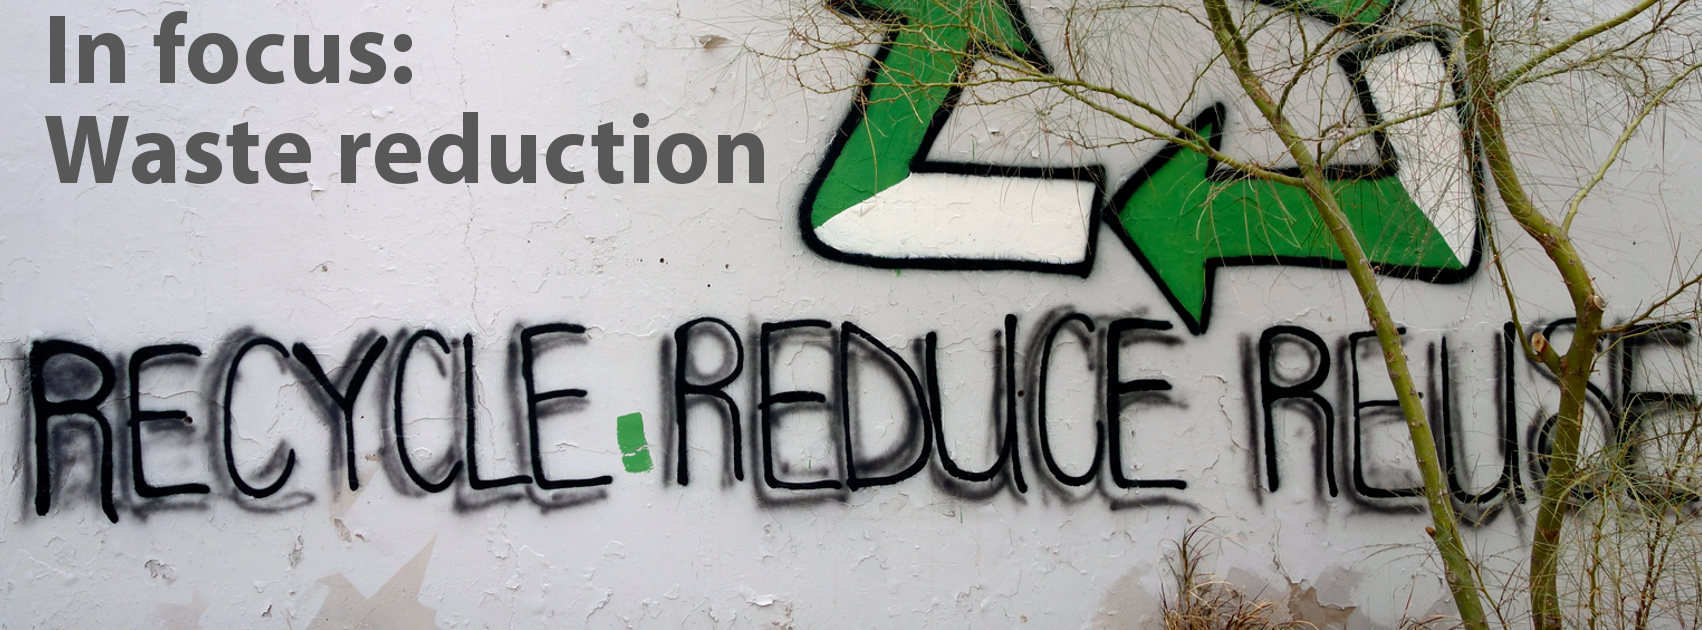 In Focus: Waste reduction